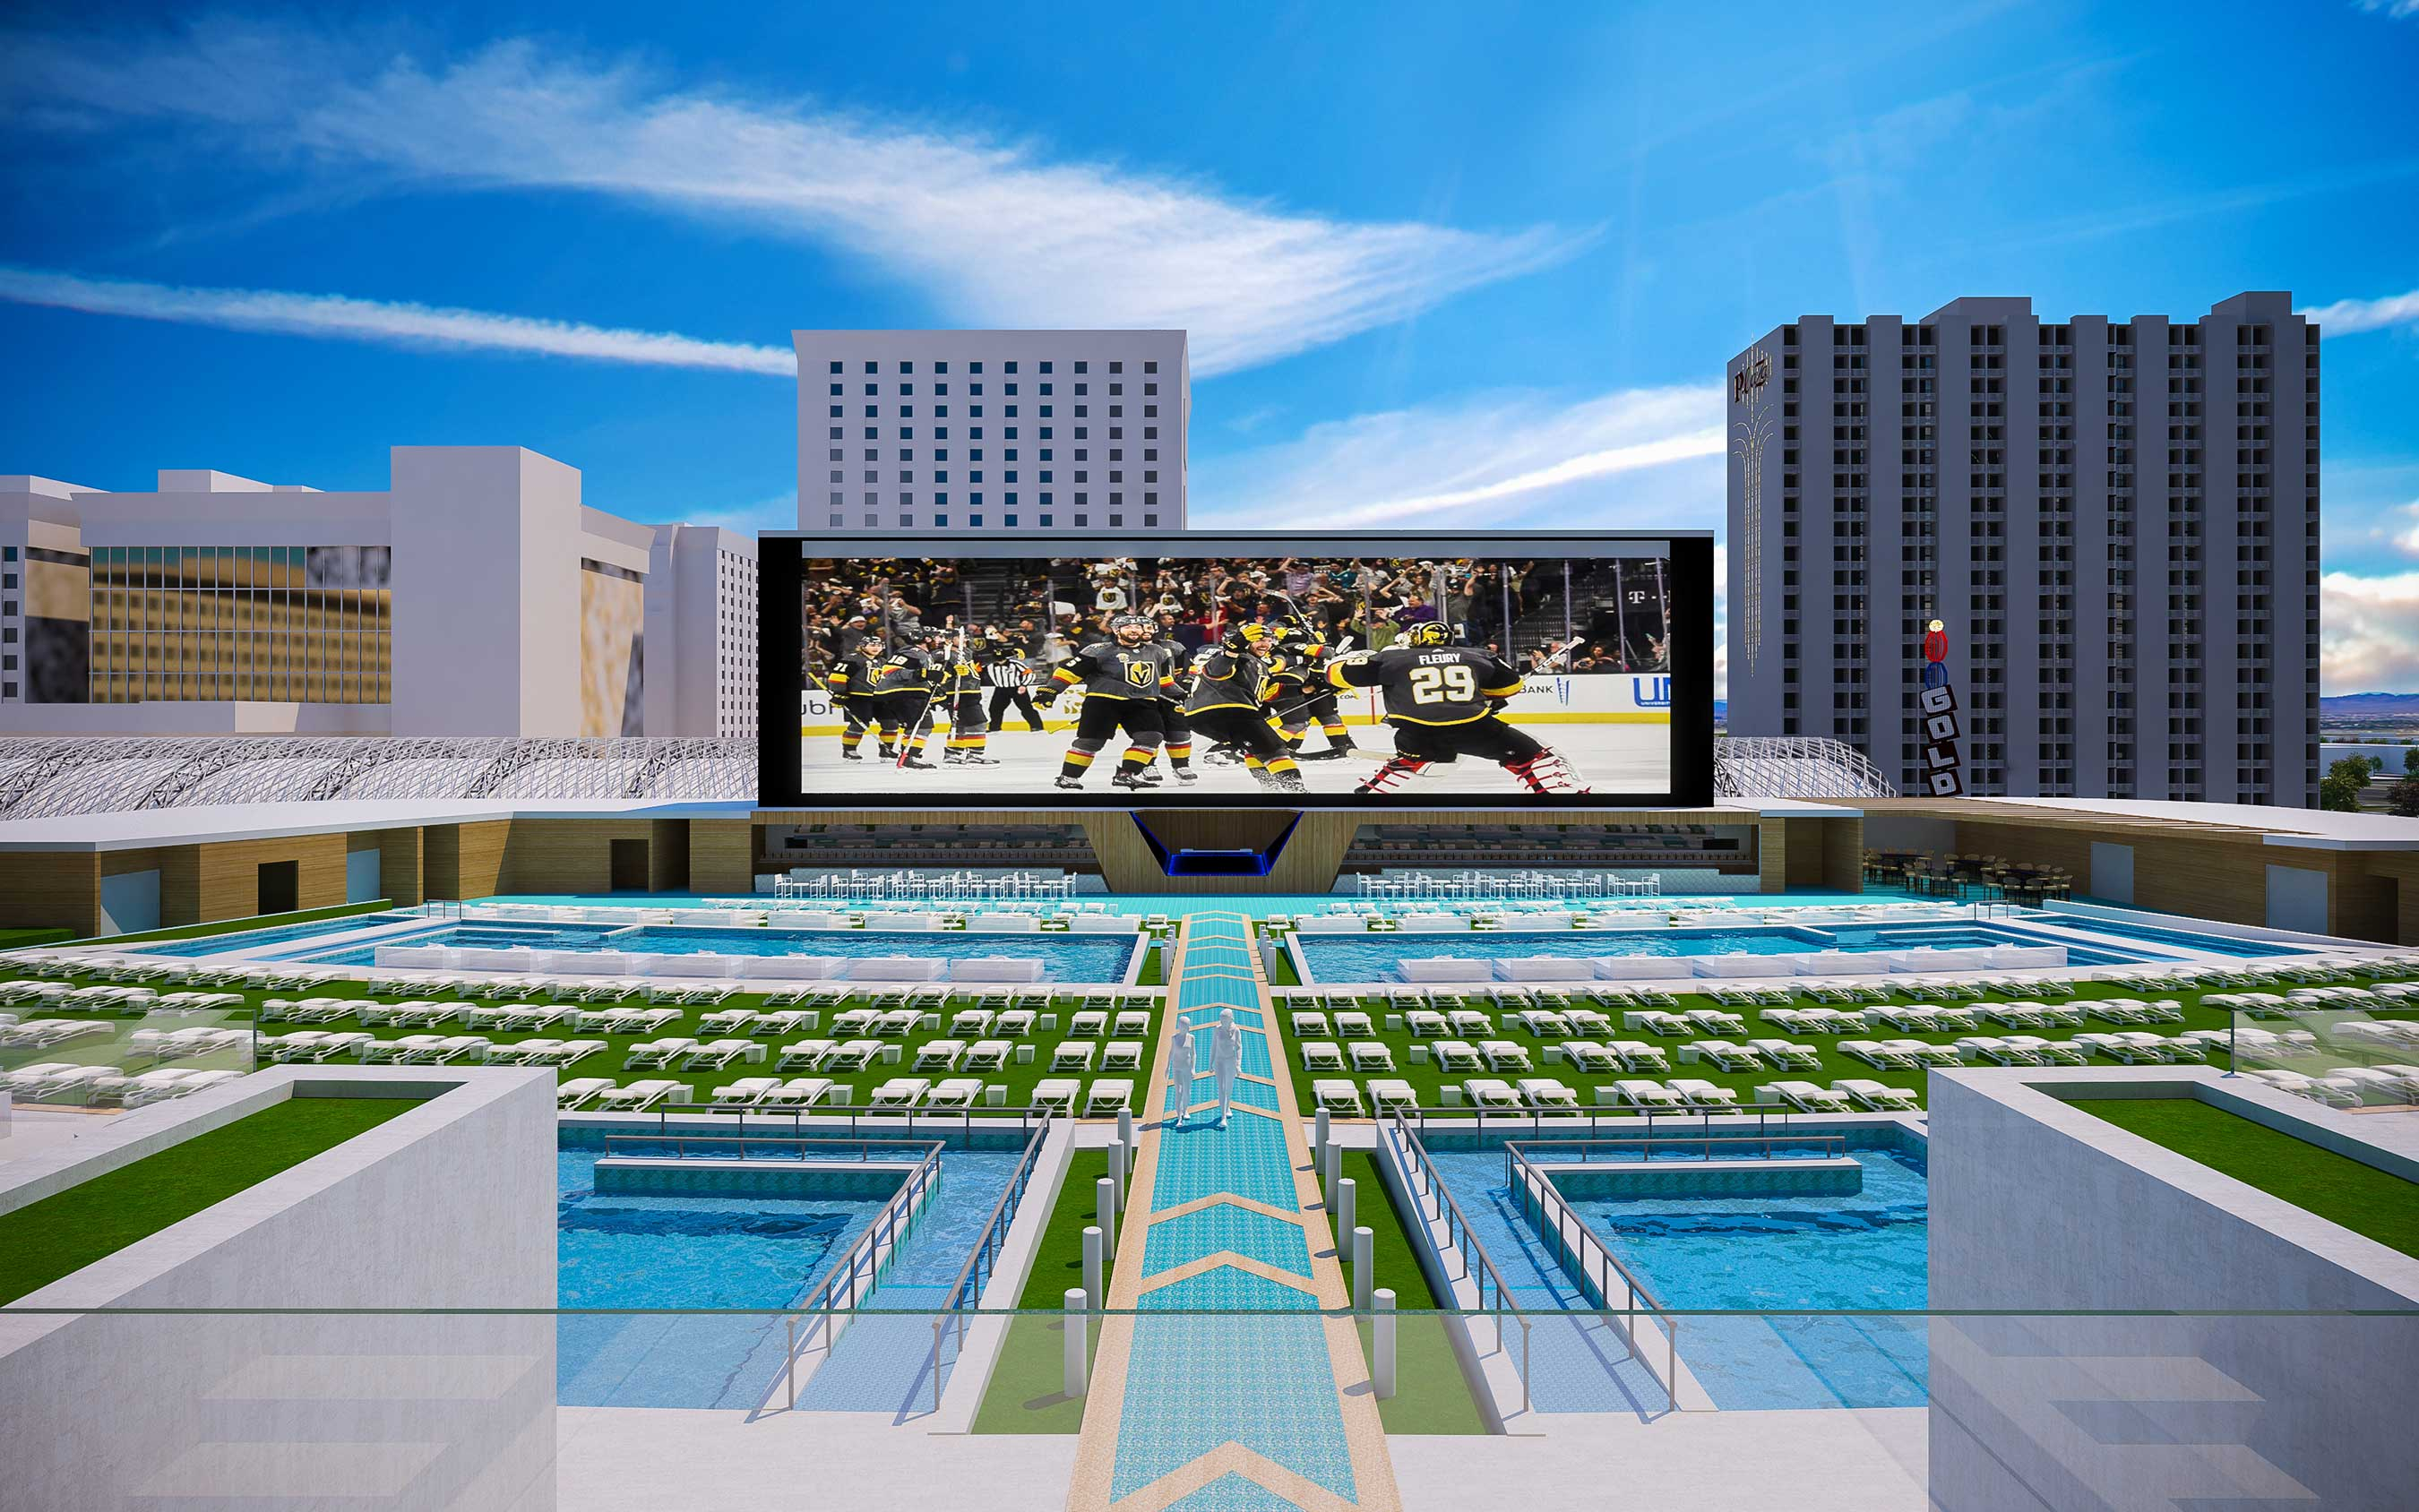 Best Pools In Vegas 2020 Circa Resort & Casino to Debut in Downtown Las Vegas, December 2020